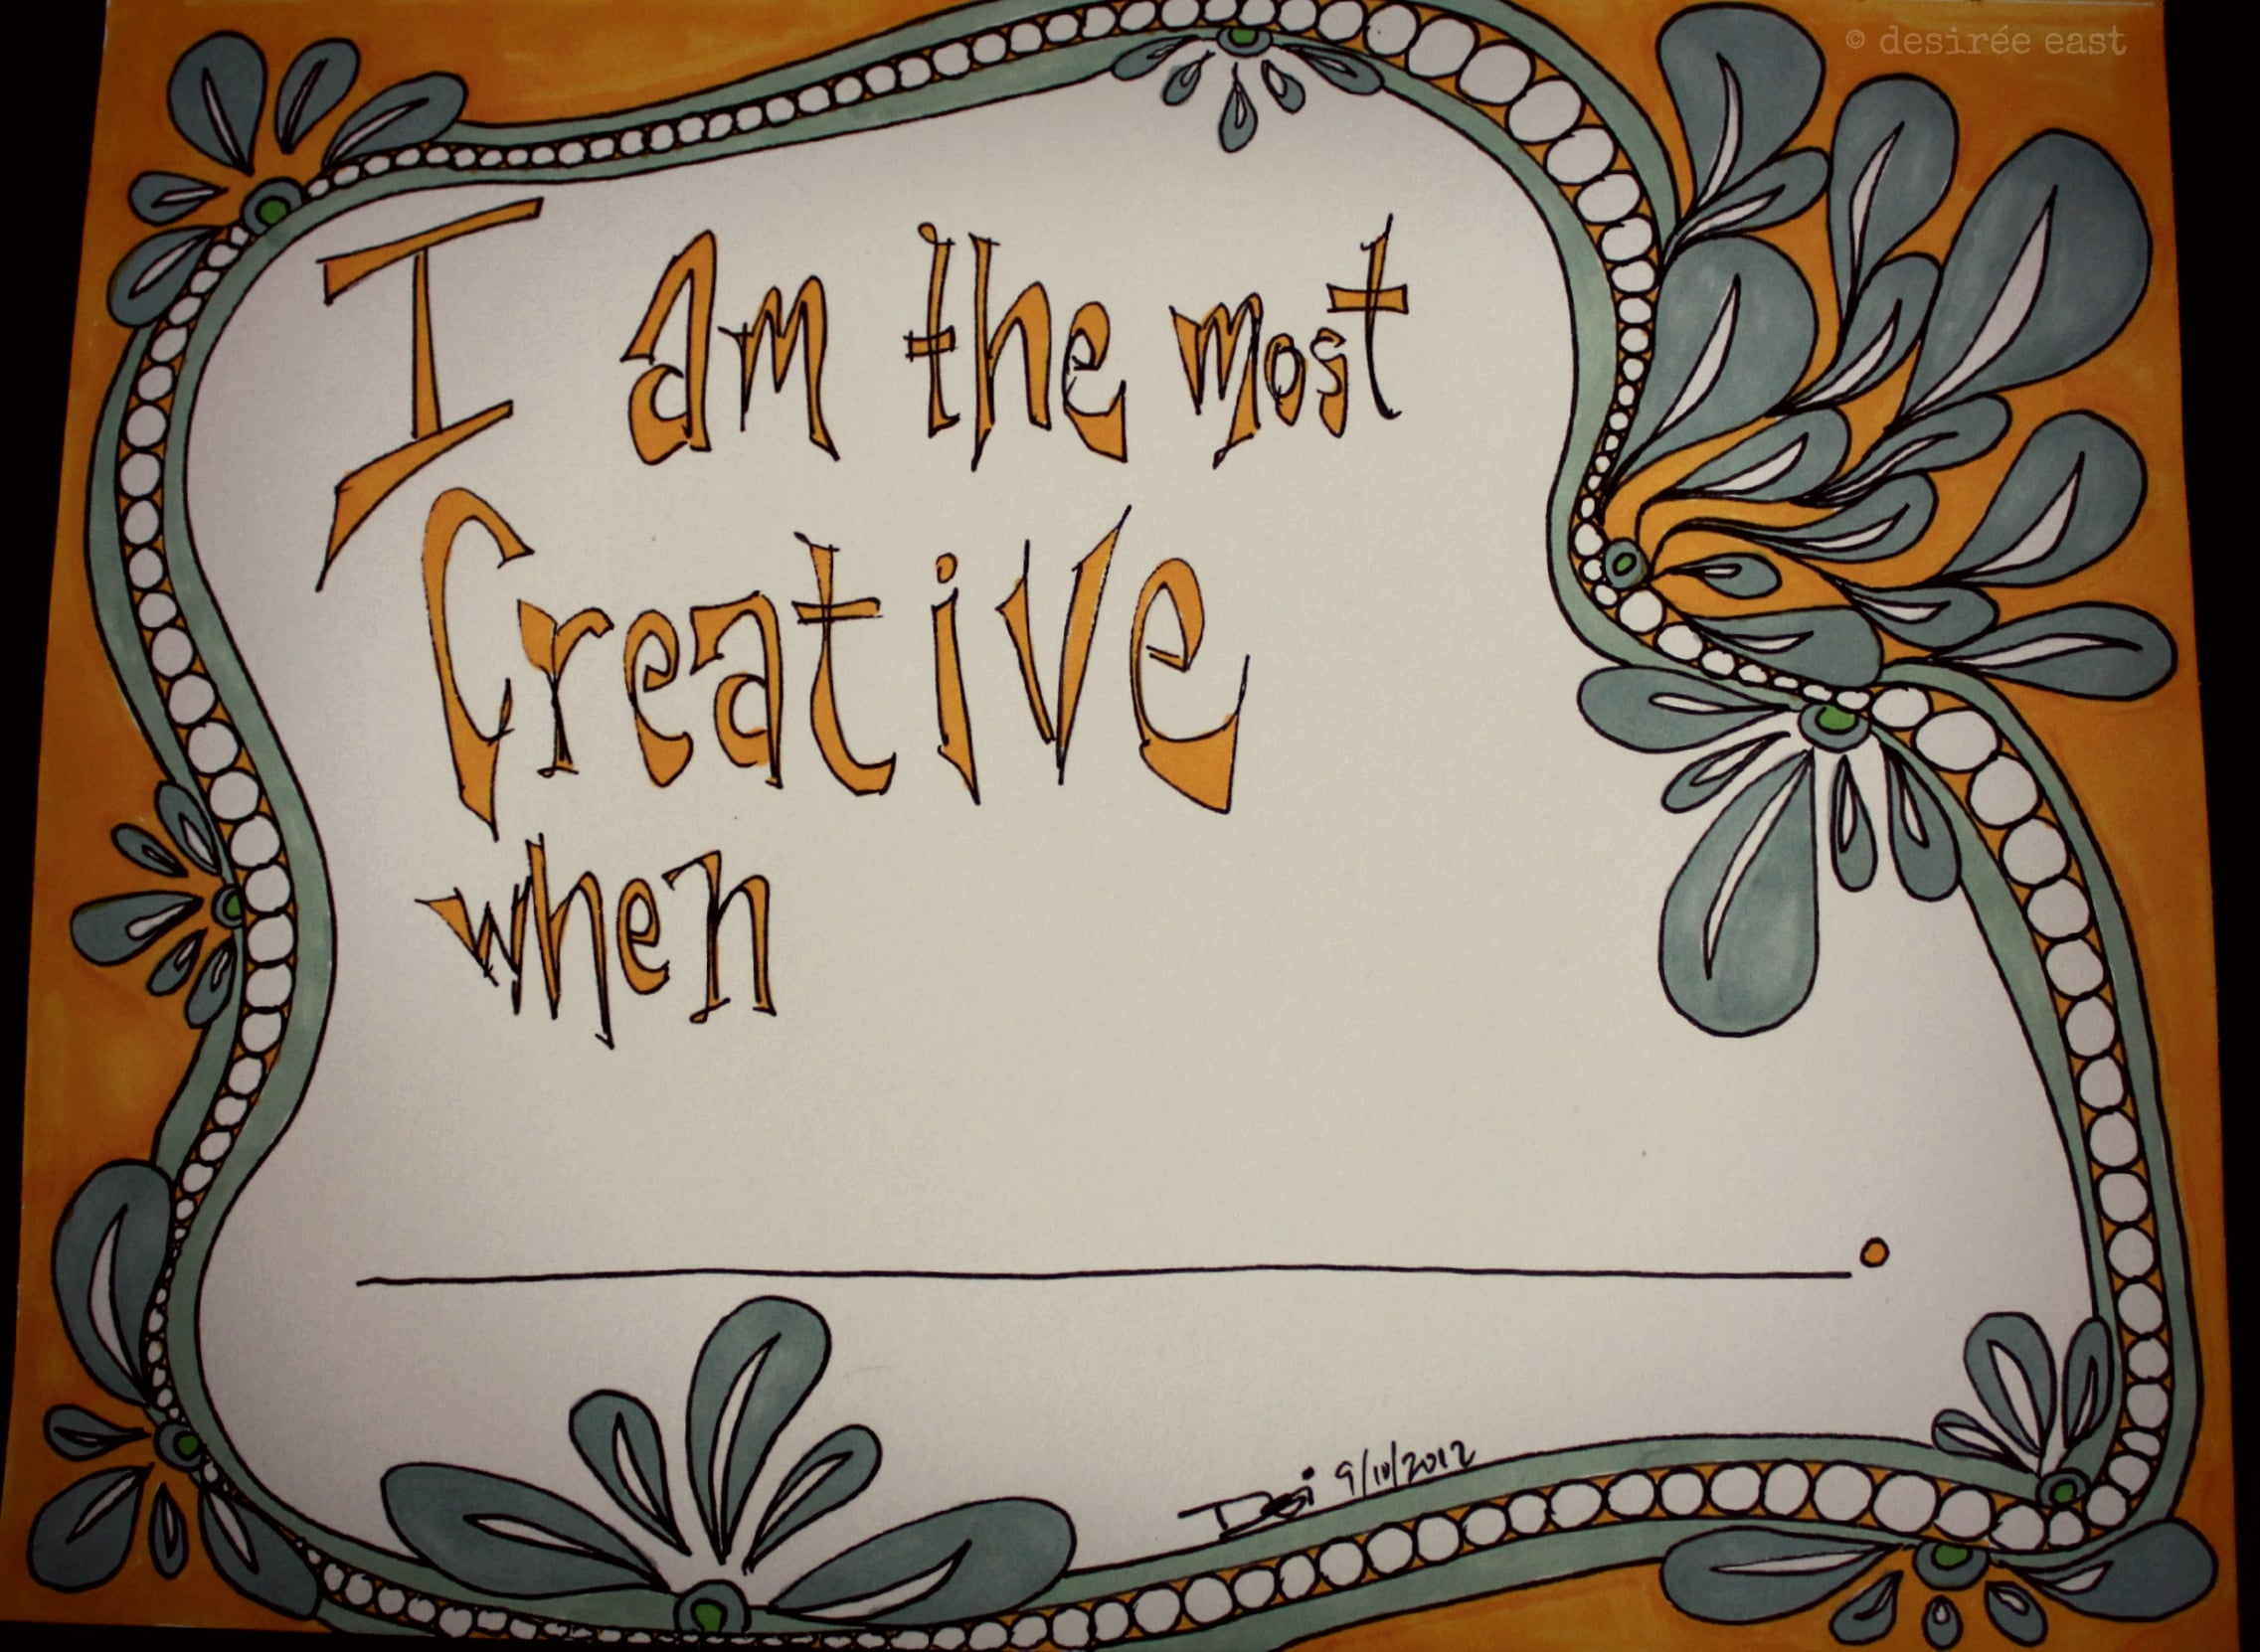 when are you the most creative? illustration by desiree east